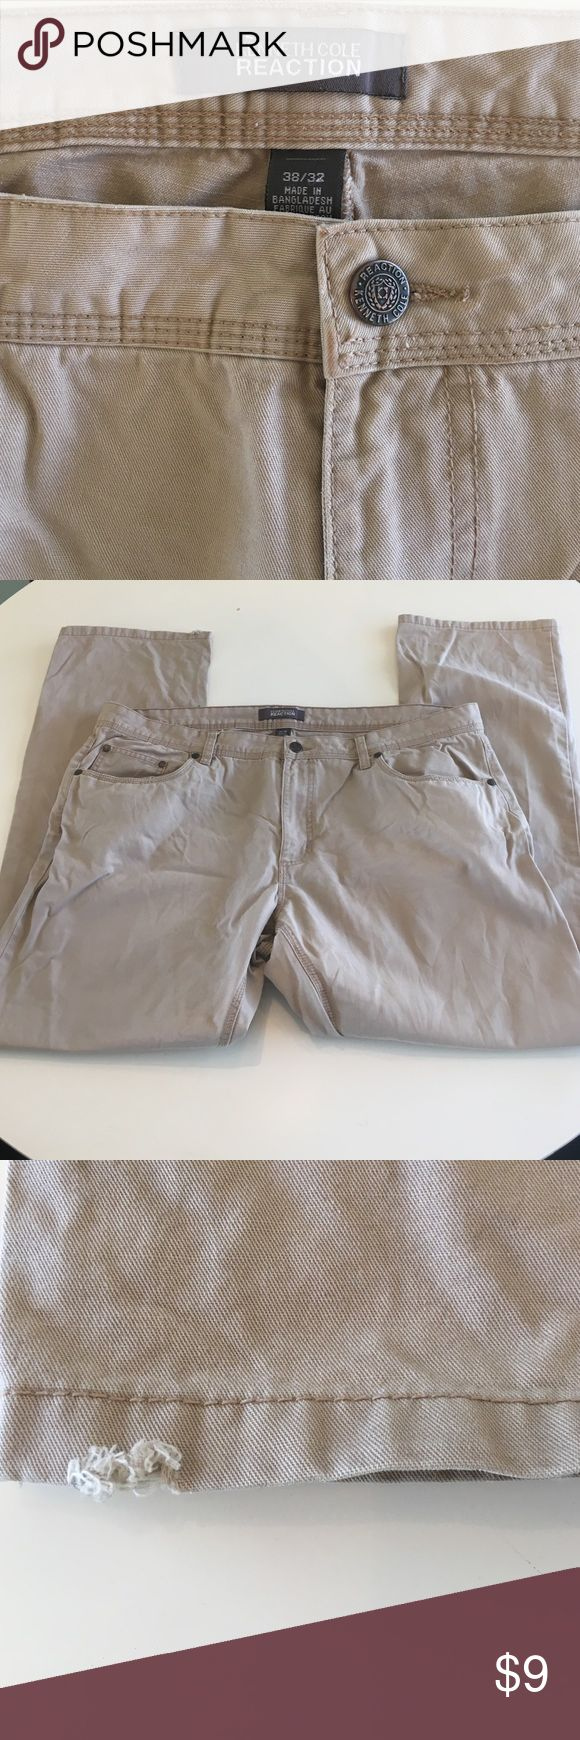 Kenneth Cole Reaction Men's Khaki Pants Great pair of khaki pants. Only sign of wear is on the hem of the right leg - see pictures. Only selling them because they don't fit hubby anymore. 38w 32L Kenneth Cole Reaction Pants Chinos & Khakis